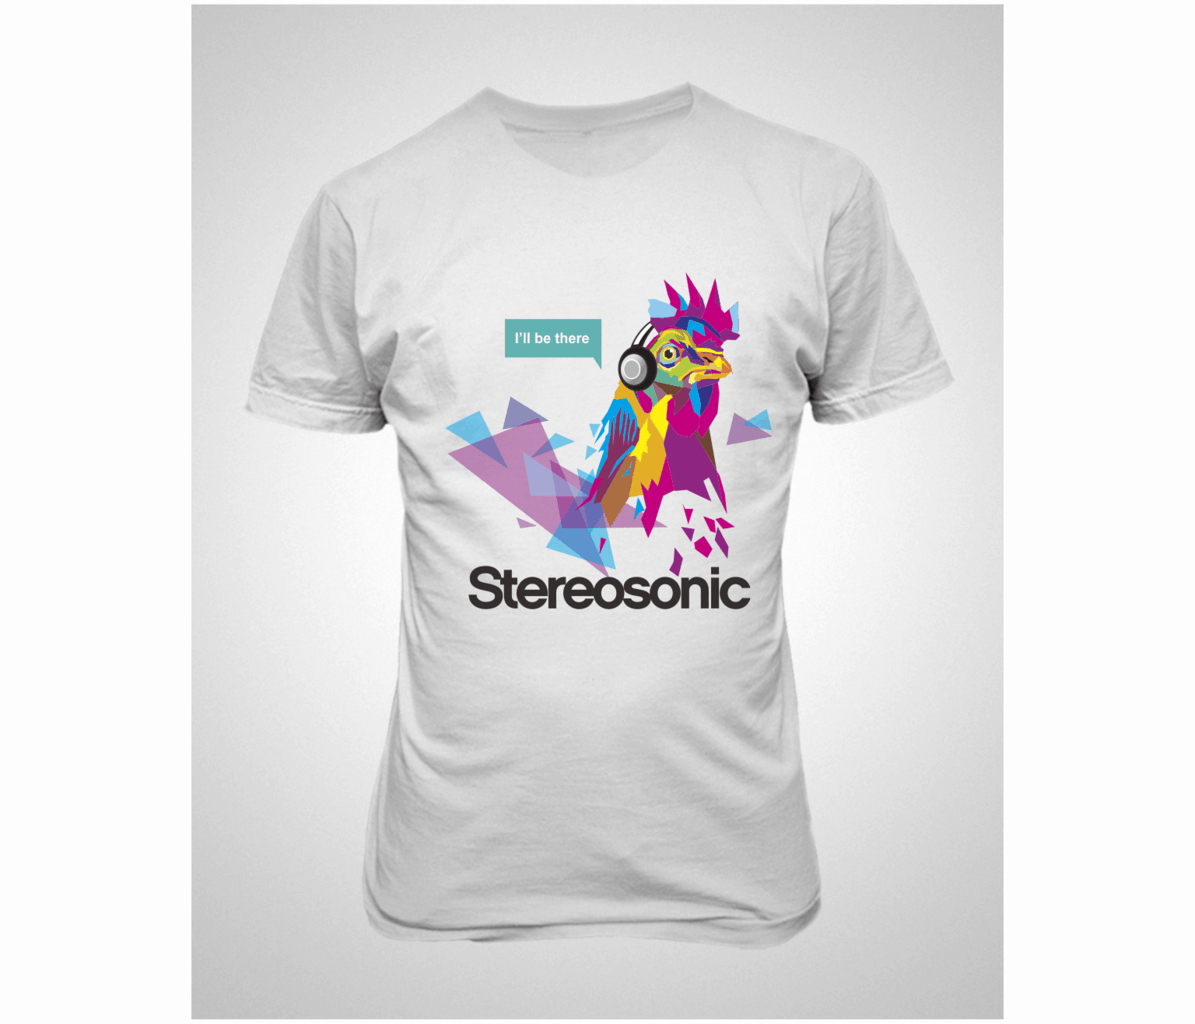 99designs Has Partnered With Stereosonic To Create A Shirt Design